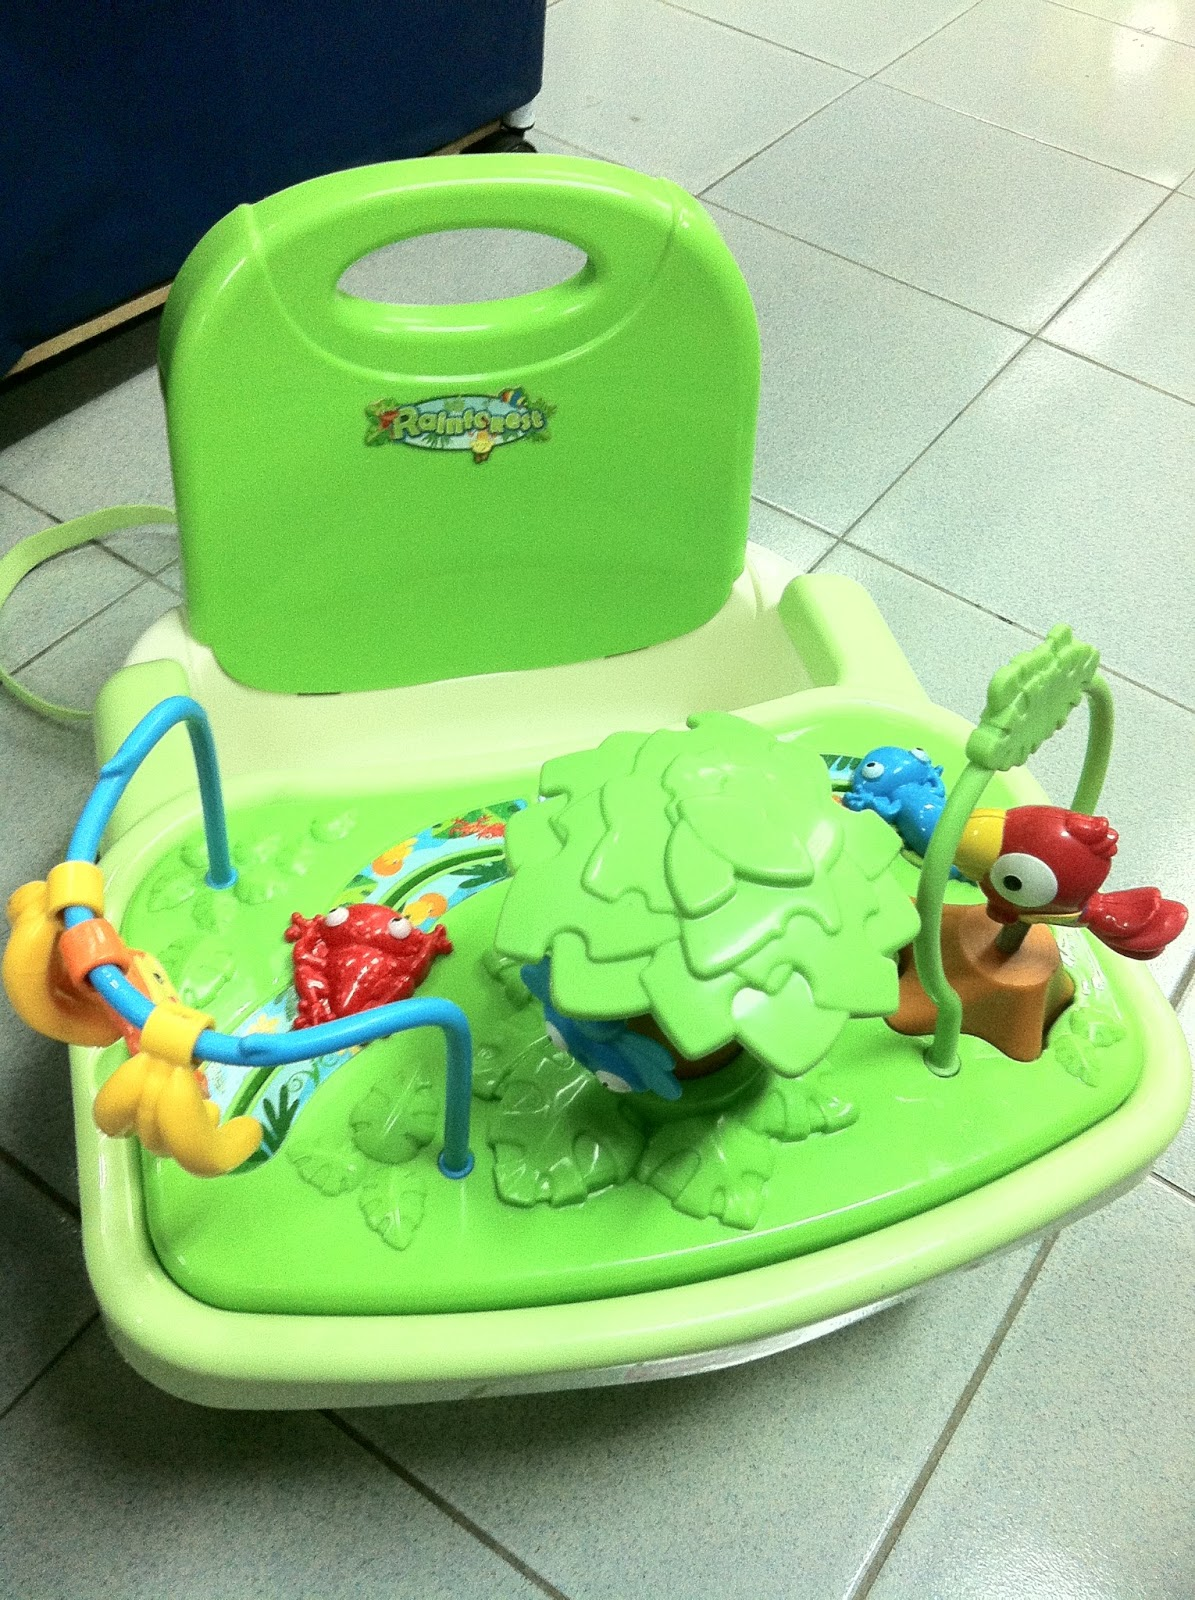 fisher price rainforest healthy care high chair 2 rubber casters preloved toysworld thetottoys